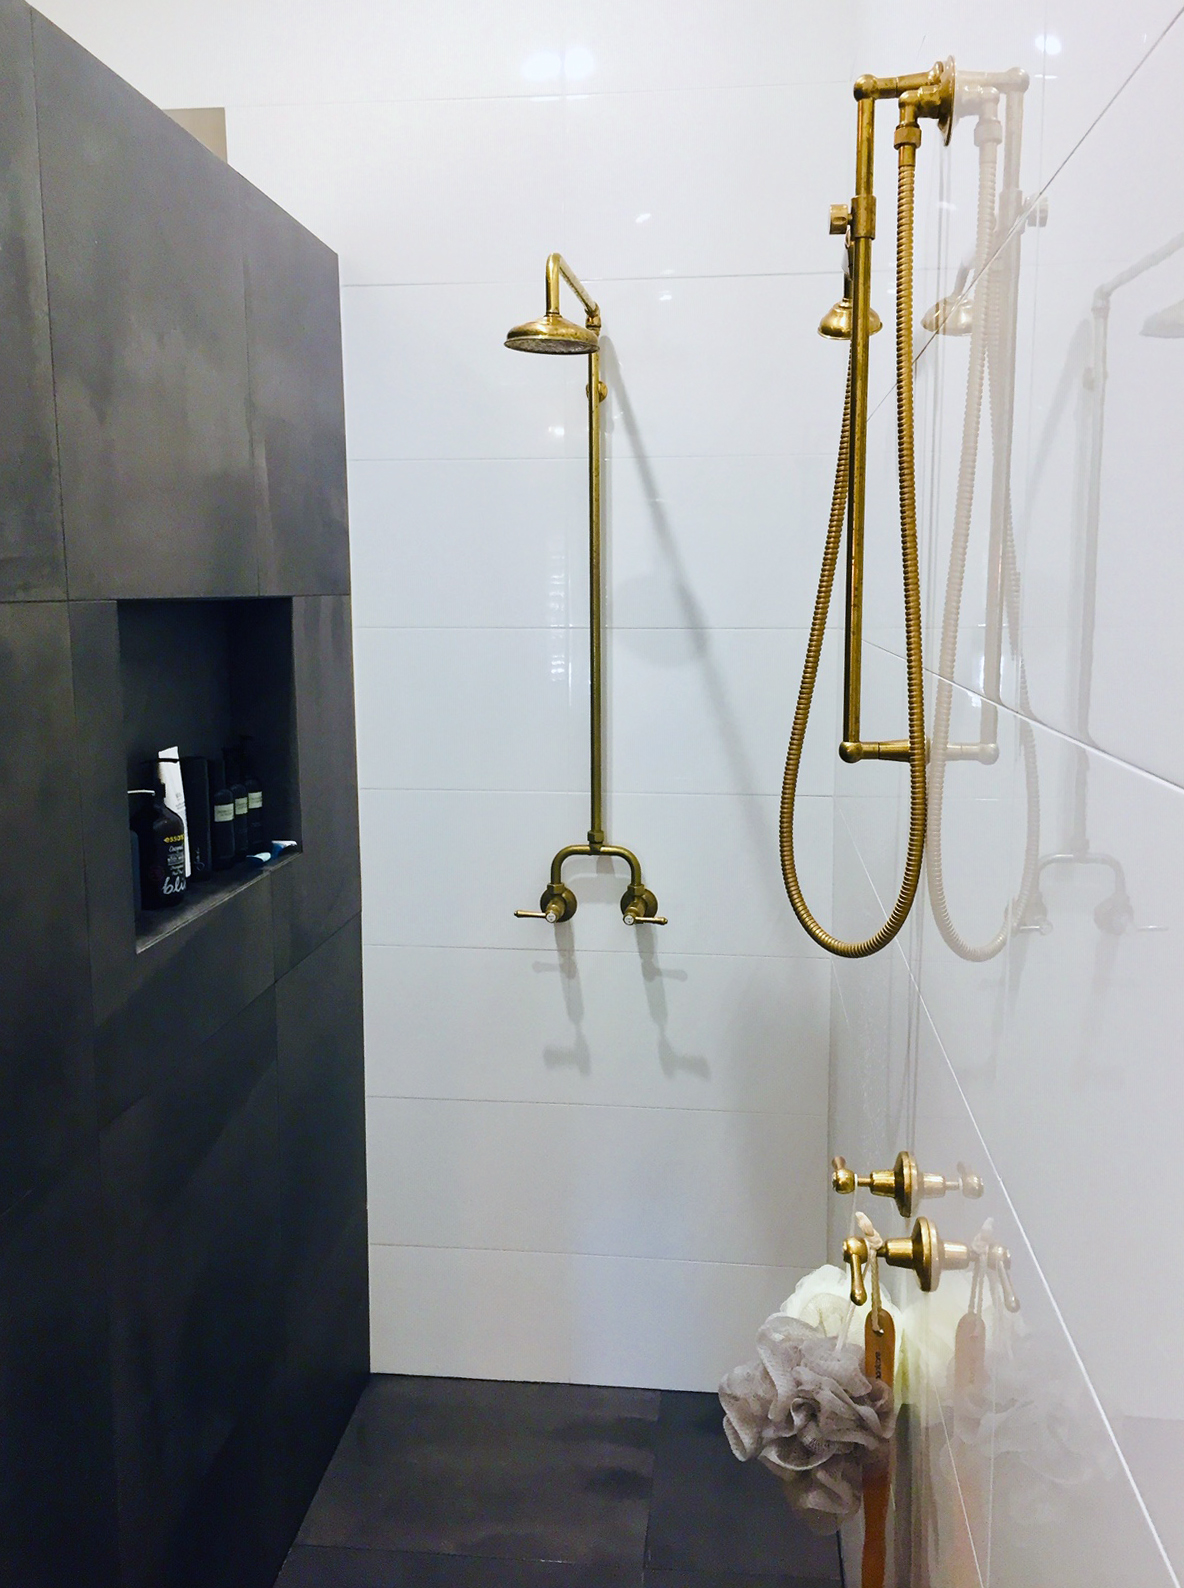 Roulette Lever Alcove Shower Set & Roulette Lever Sliding Rail Shower Kit in Polish to Plate finish. Shown after install with initial maturing.